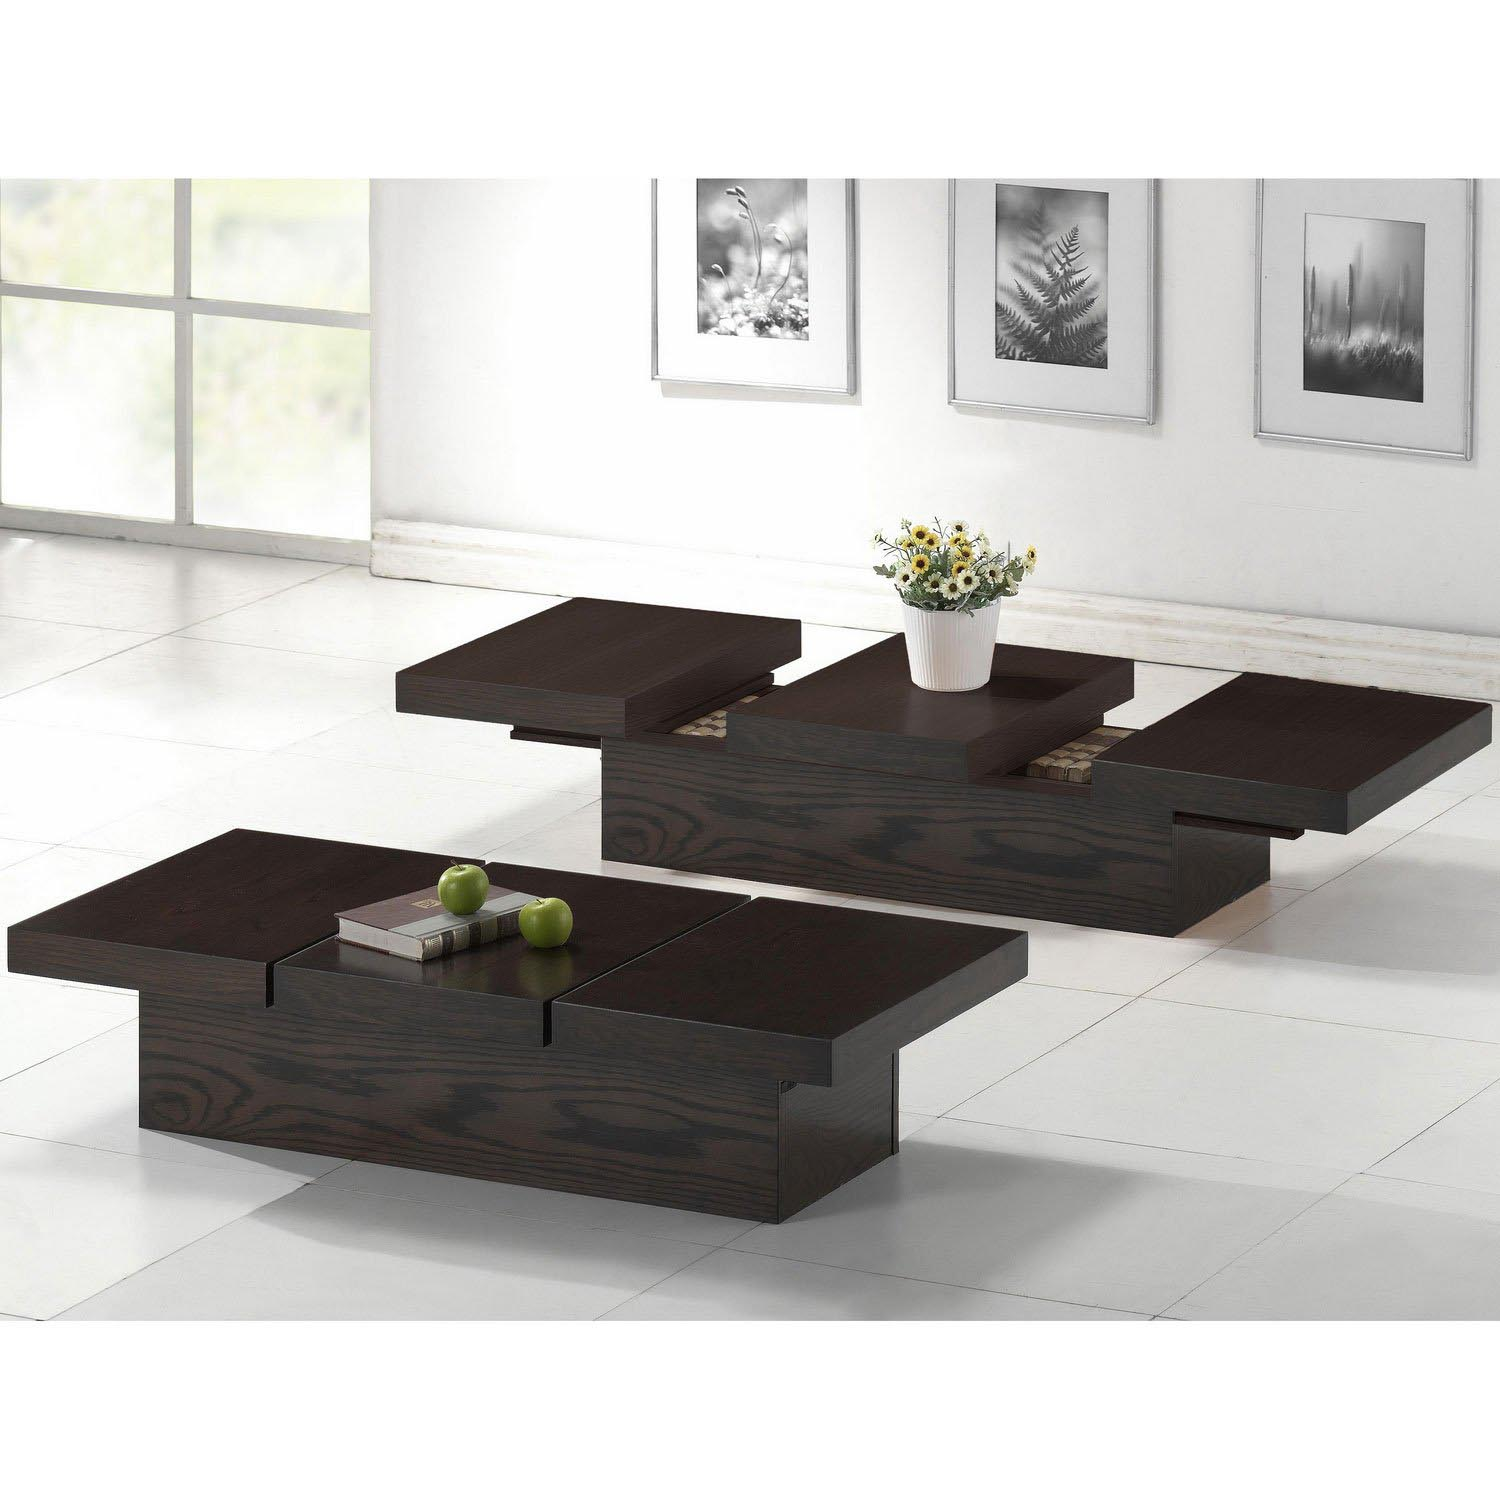 Cool coffee tables with storage coffee table design ideas for Really cool coffee tables